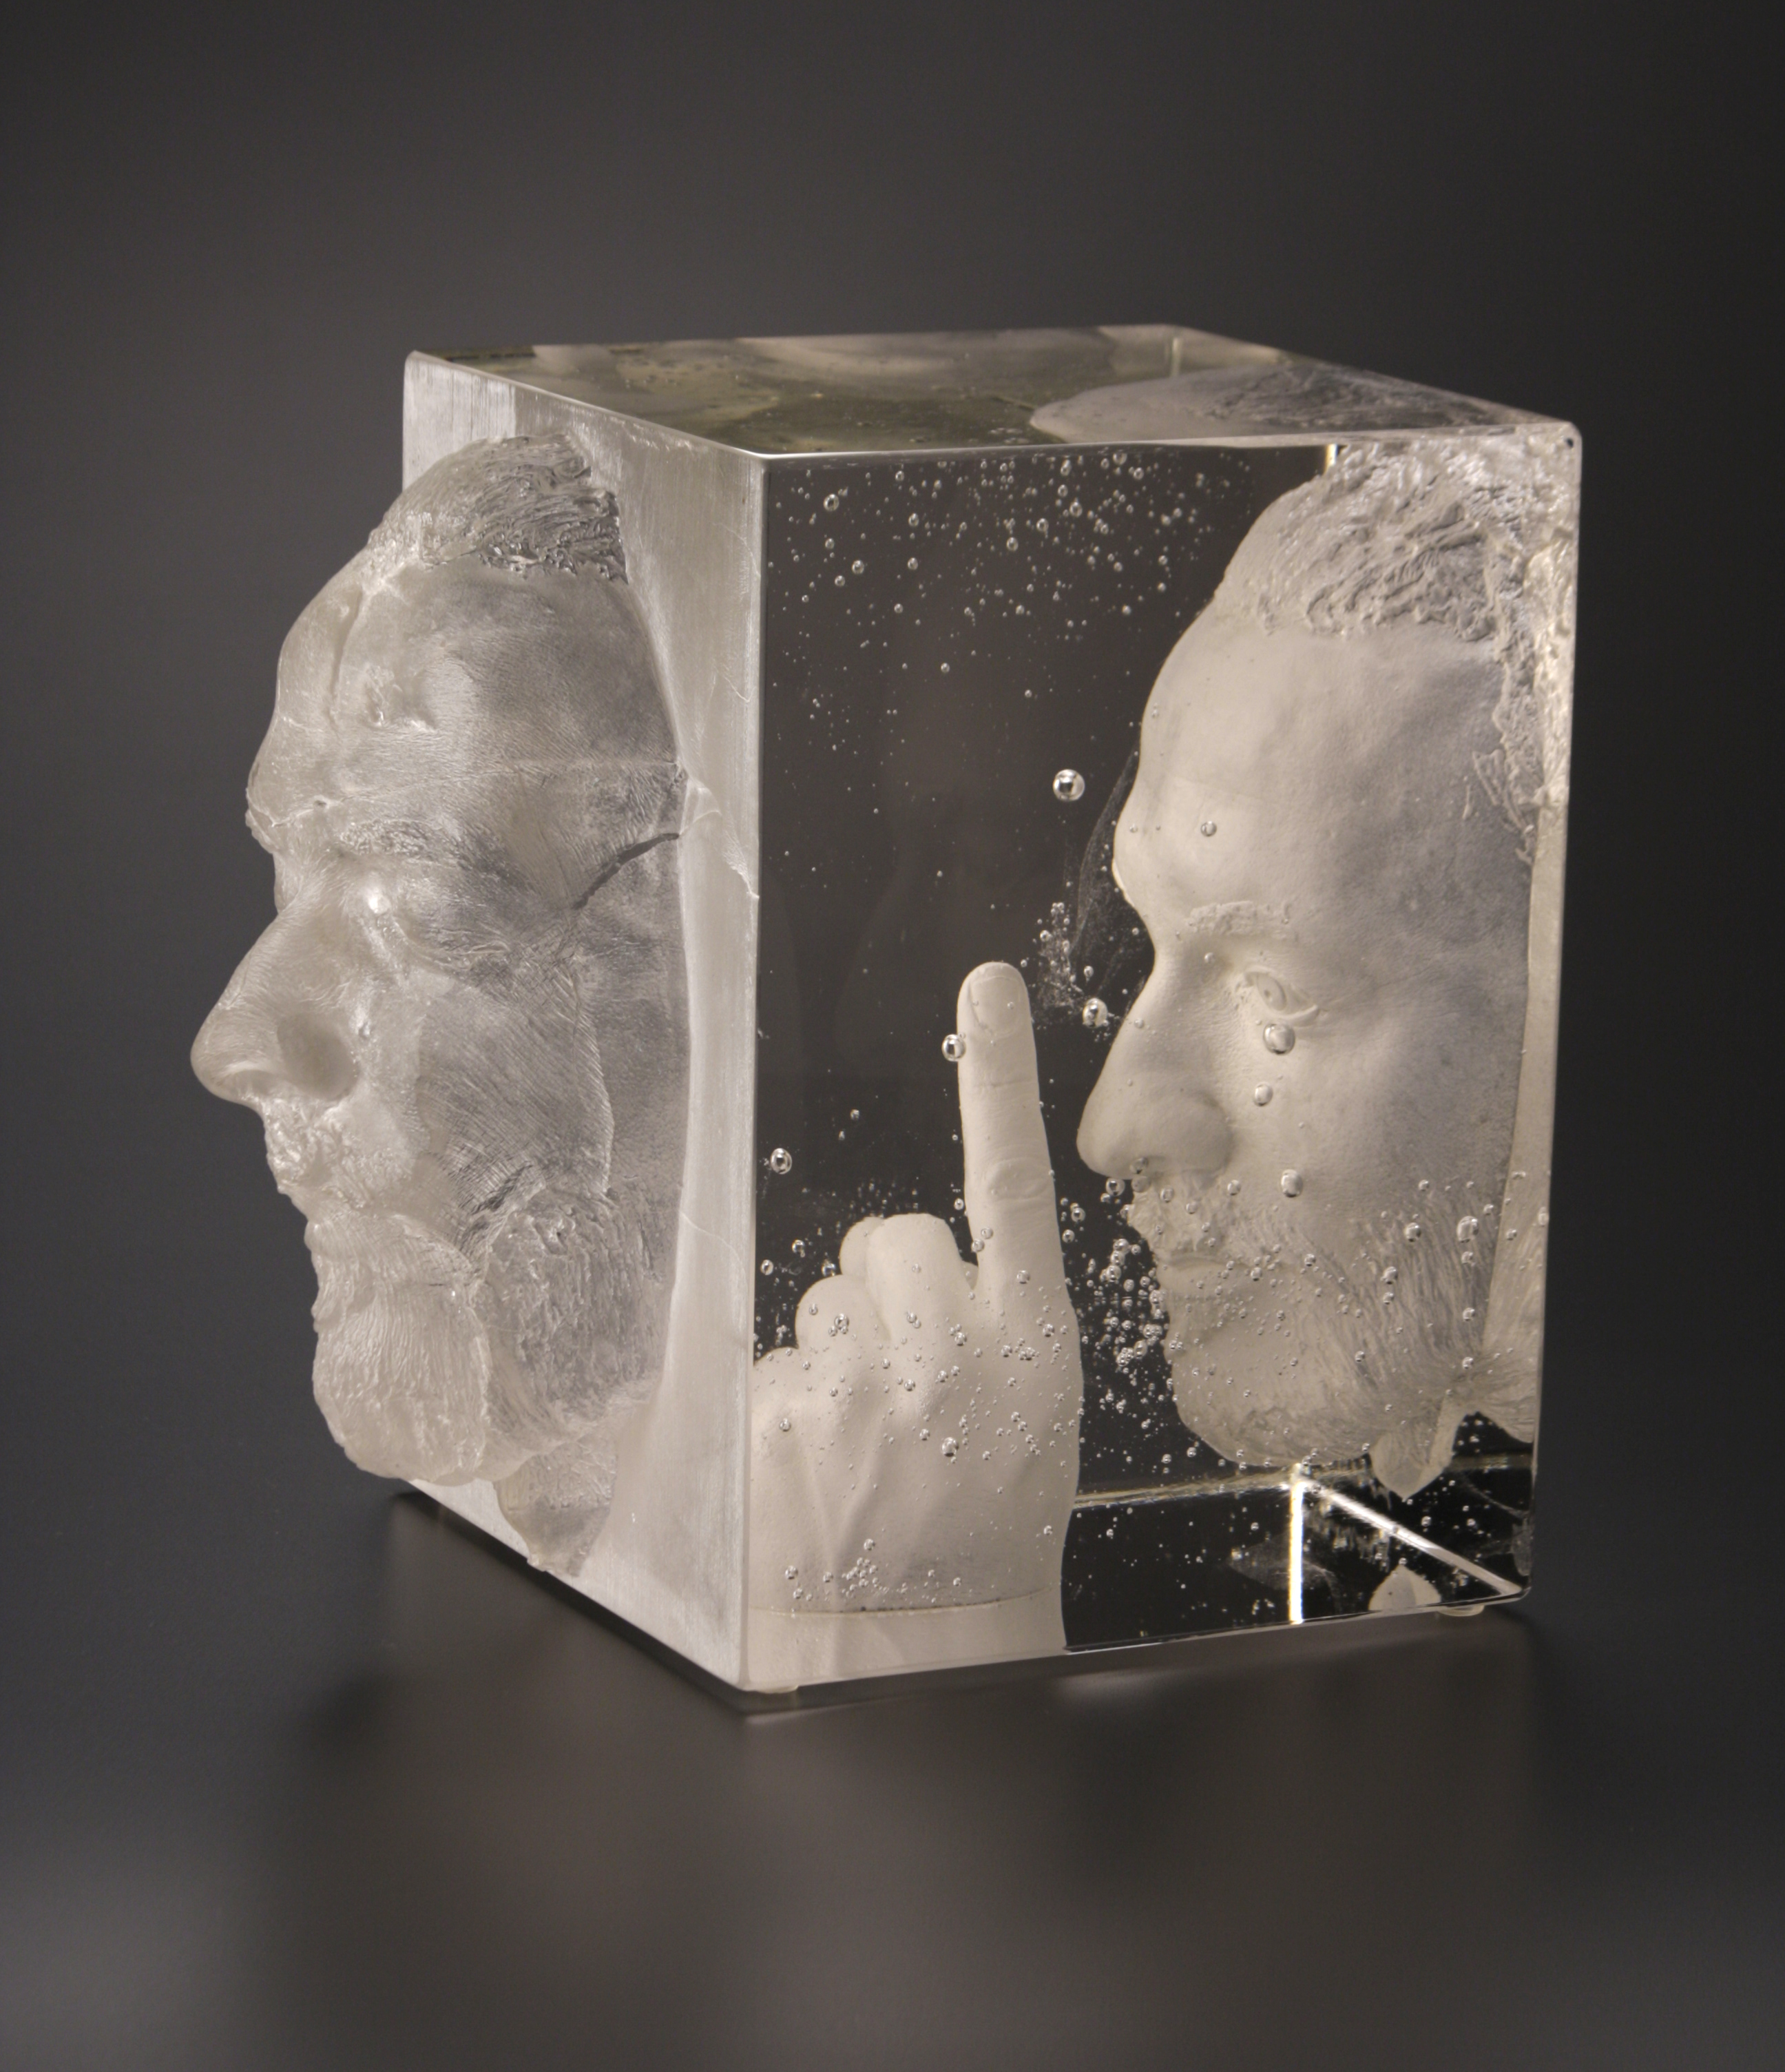 Glass block containing face with finger in front of it and a another face coming out of the block.